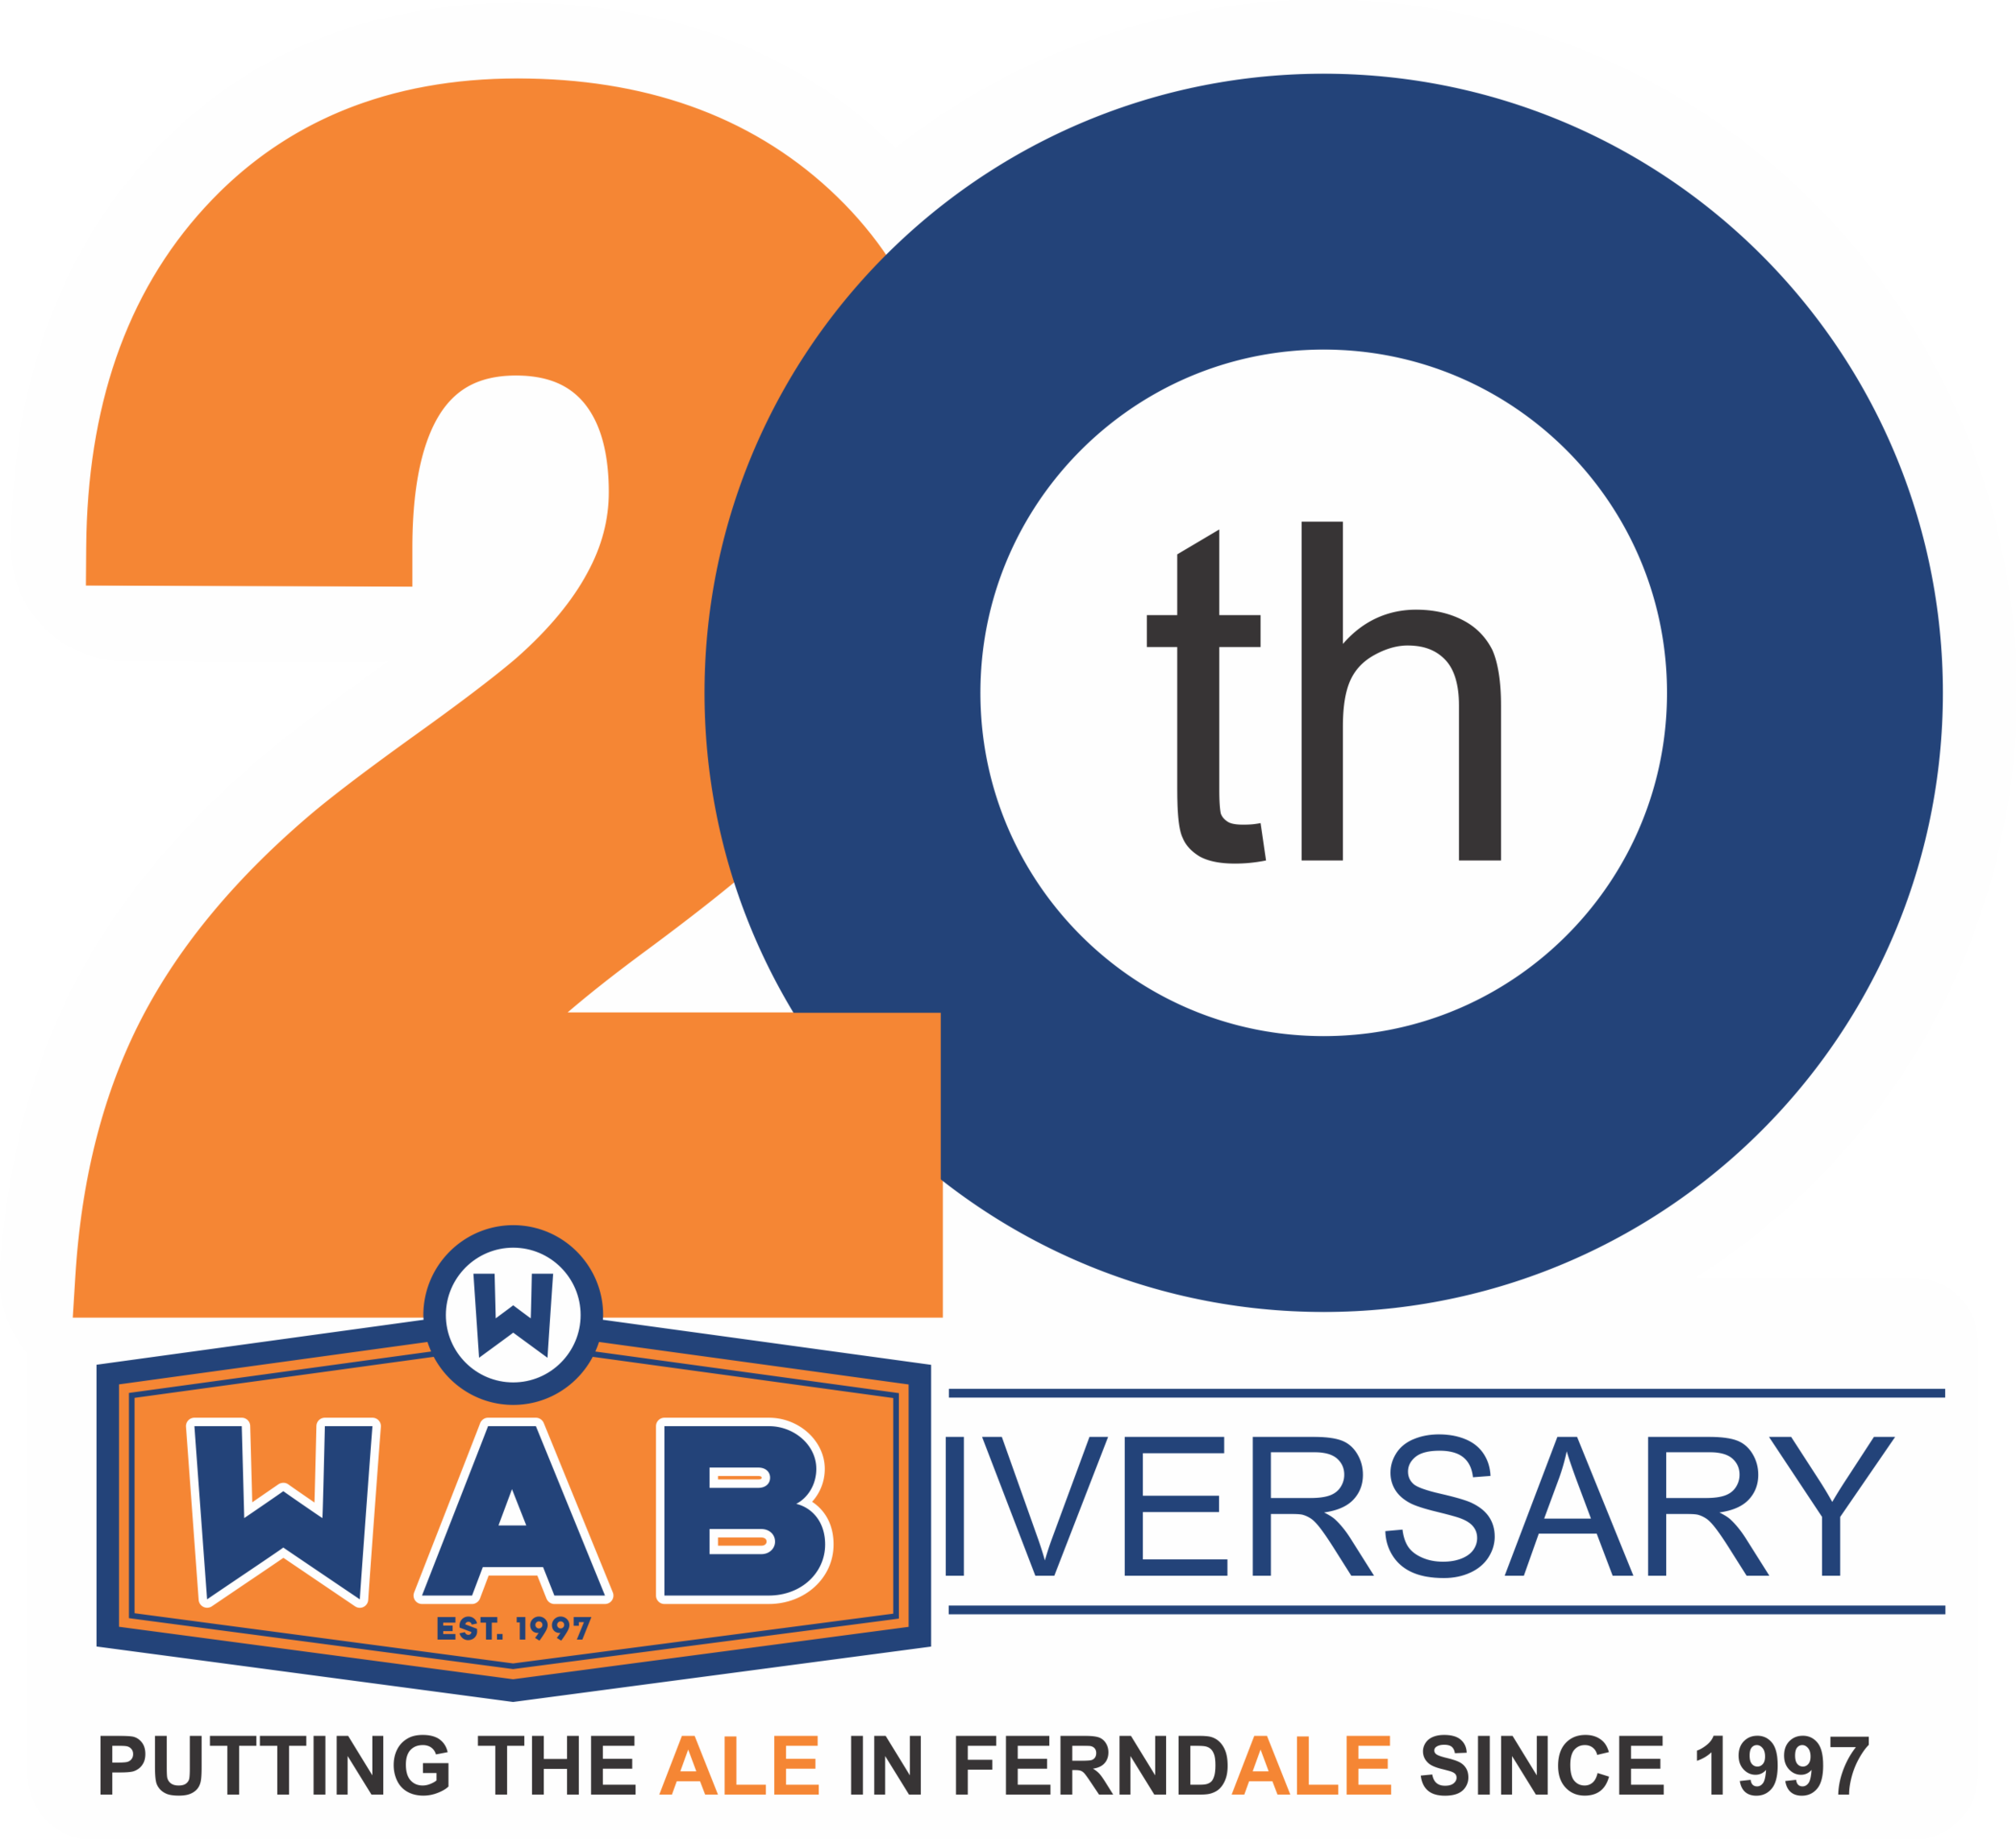 - 20 YEARS OF PUTTING THE ALE IN FERNDALE!